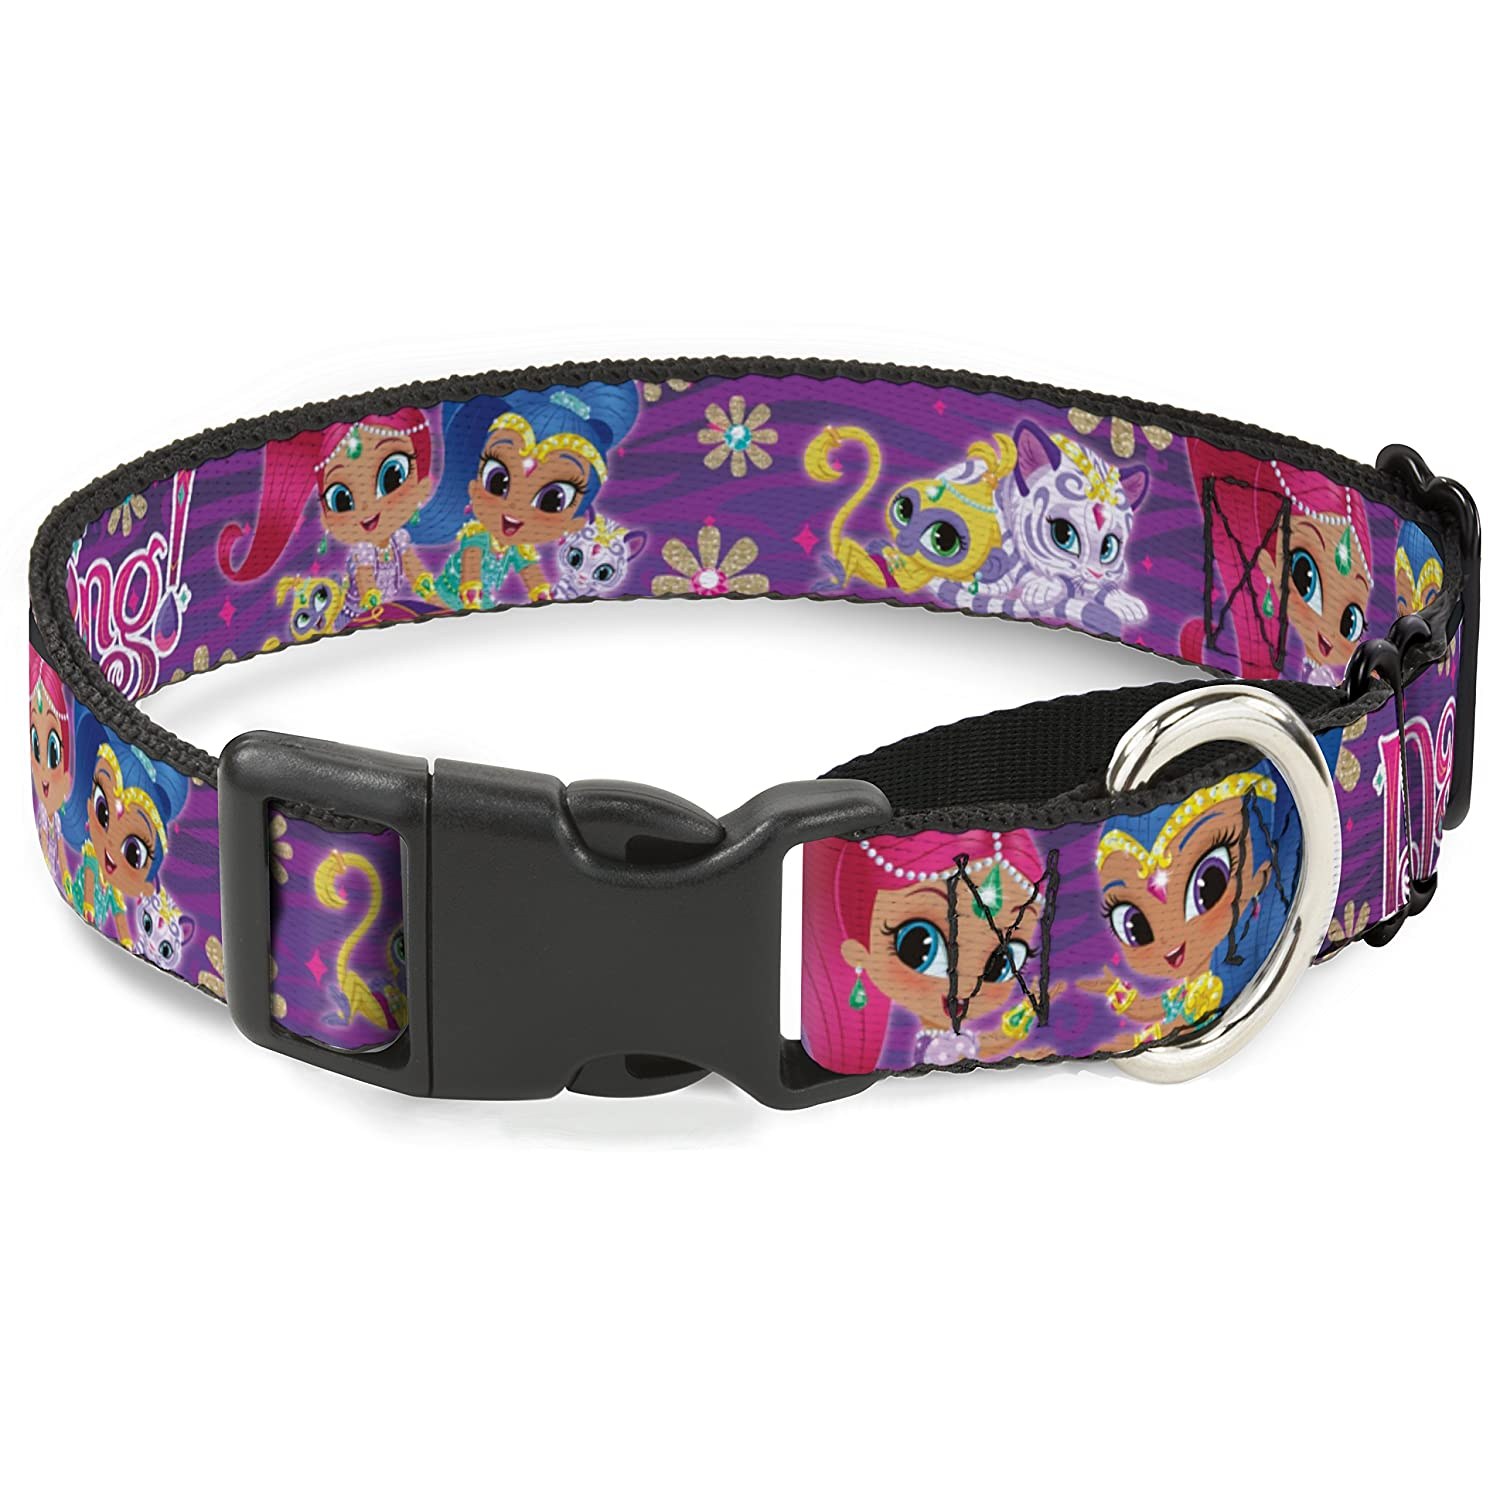 Buckle-Down Shimmer & Shine Pets Poses Flowers BE Dazzling  Purples Pinks  Martingale Dog Collar, 1  x 9-15  Small